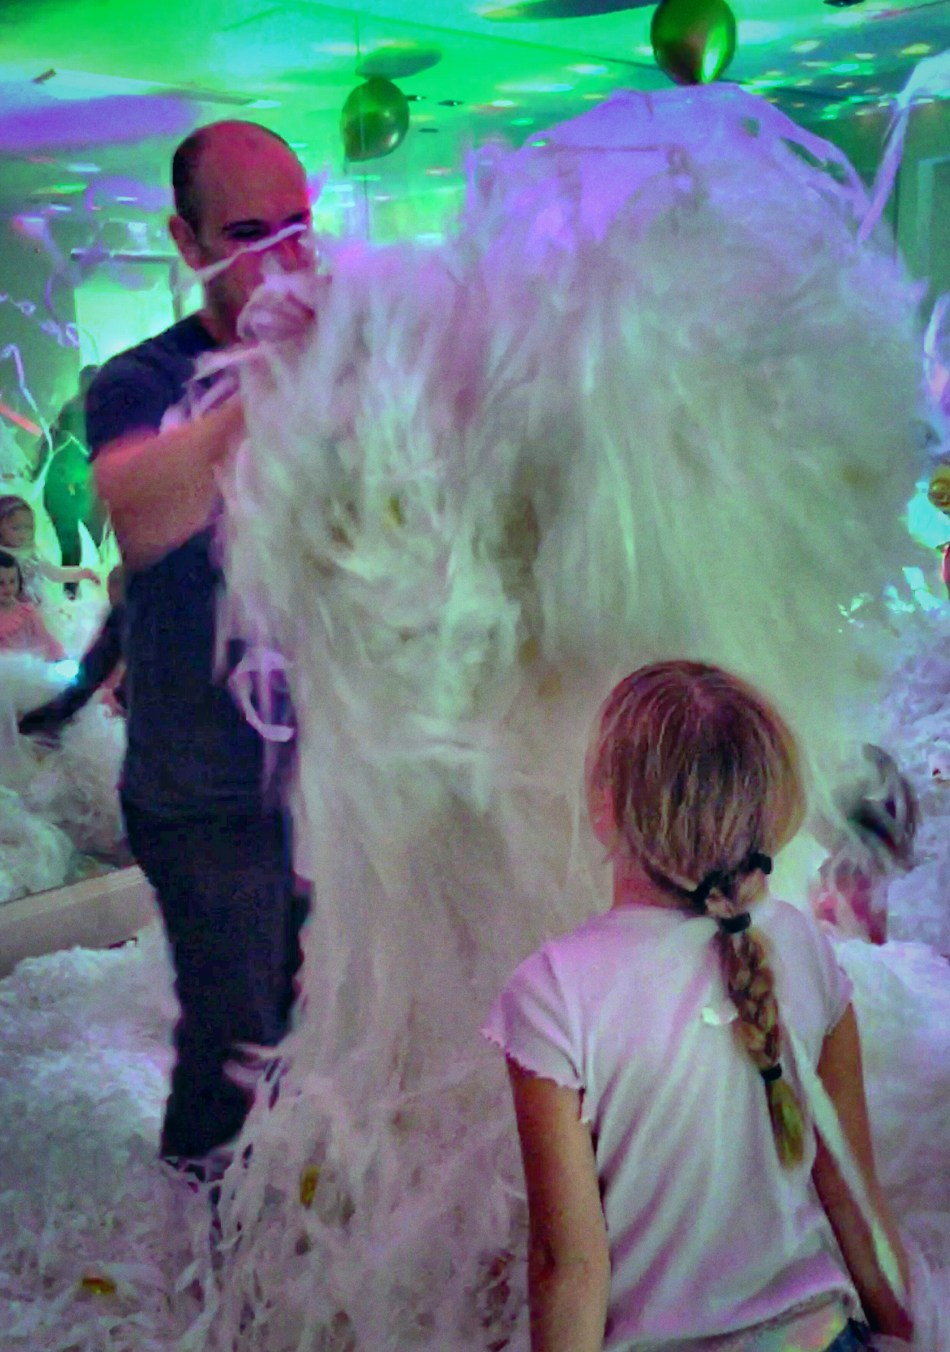 A 'paper foam' party based in Gibraltar